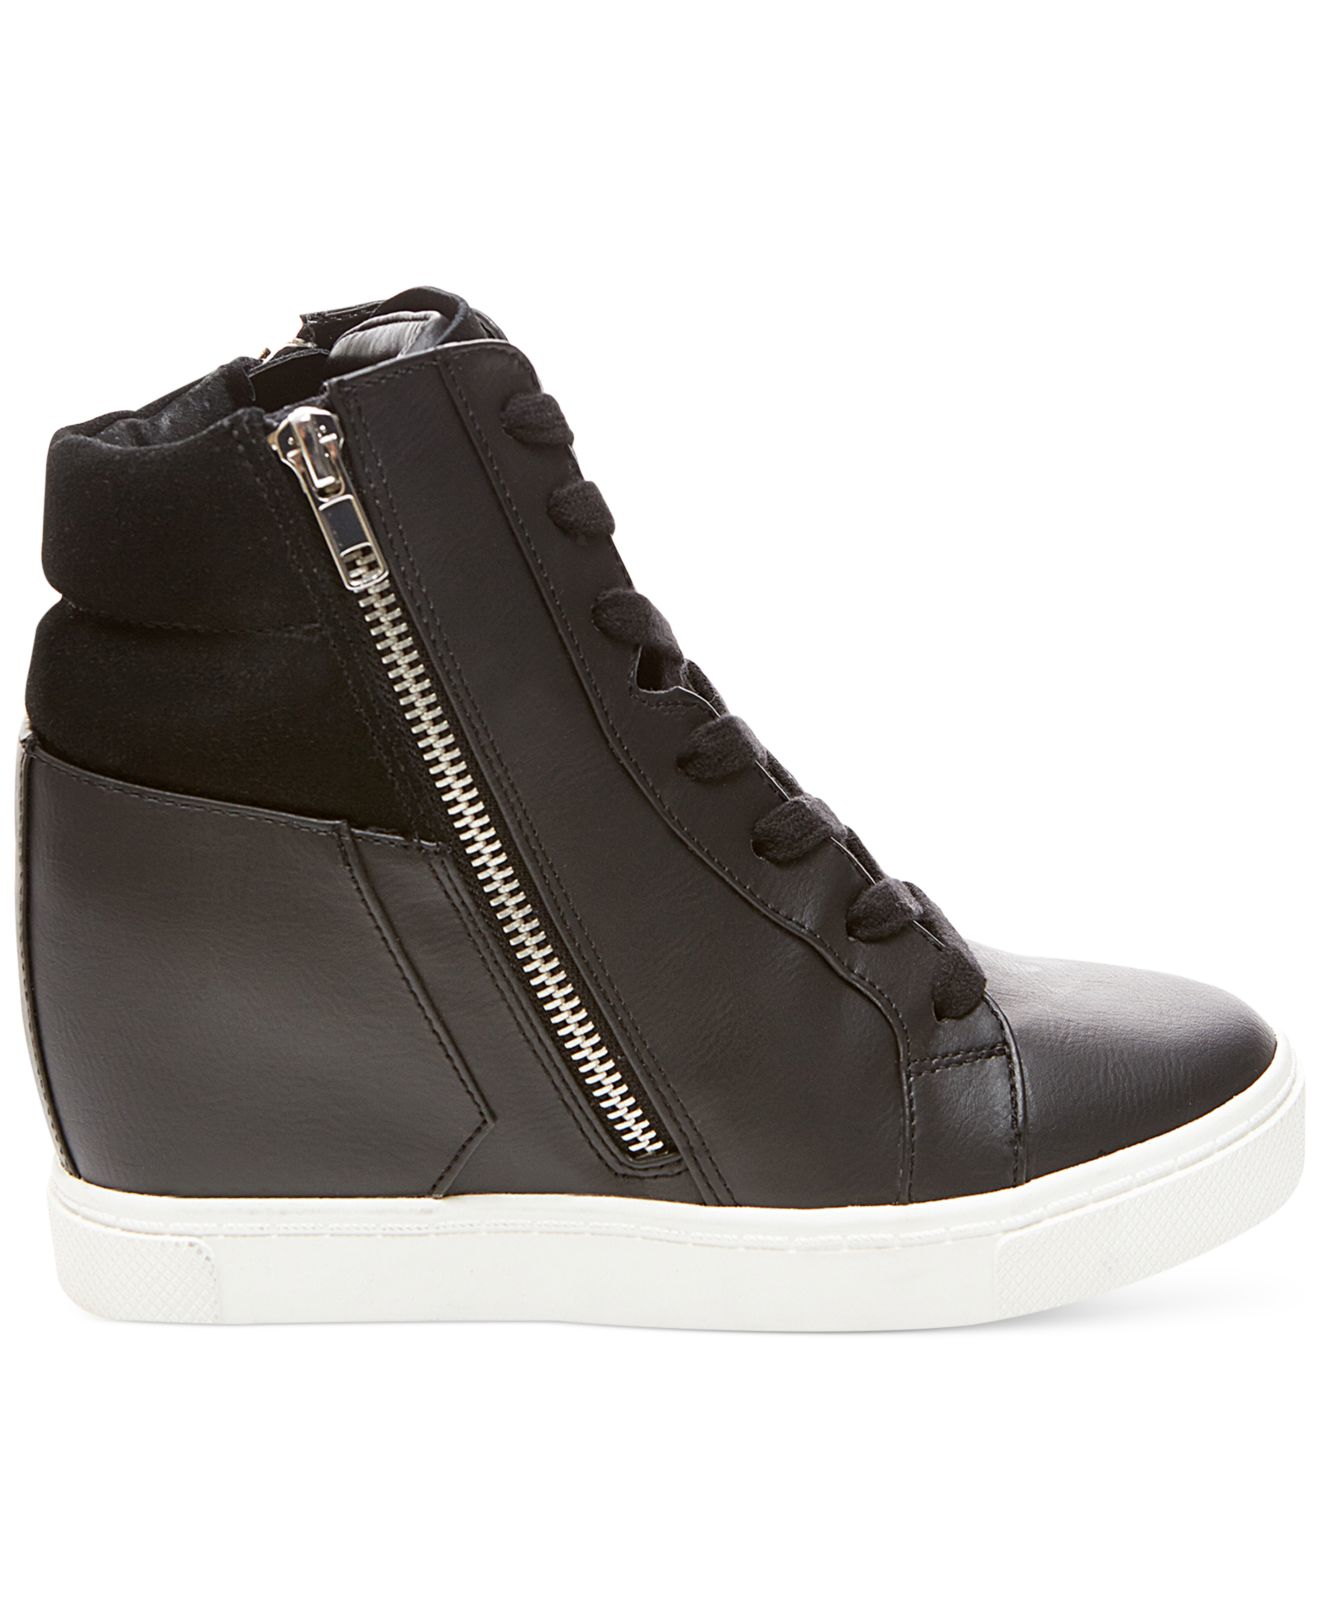 877151bf47e Gallery. Previously sold at  Macy s · Women s Wedge Sneakers ...